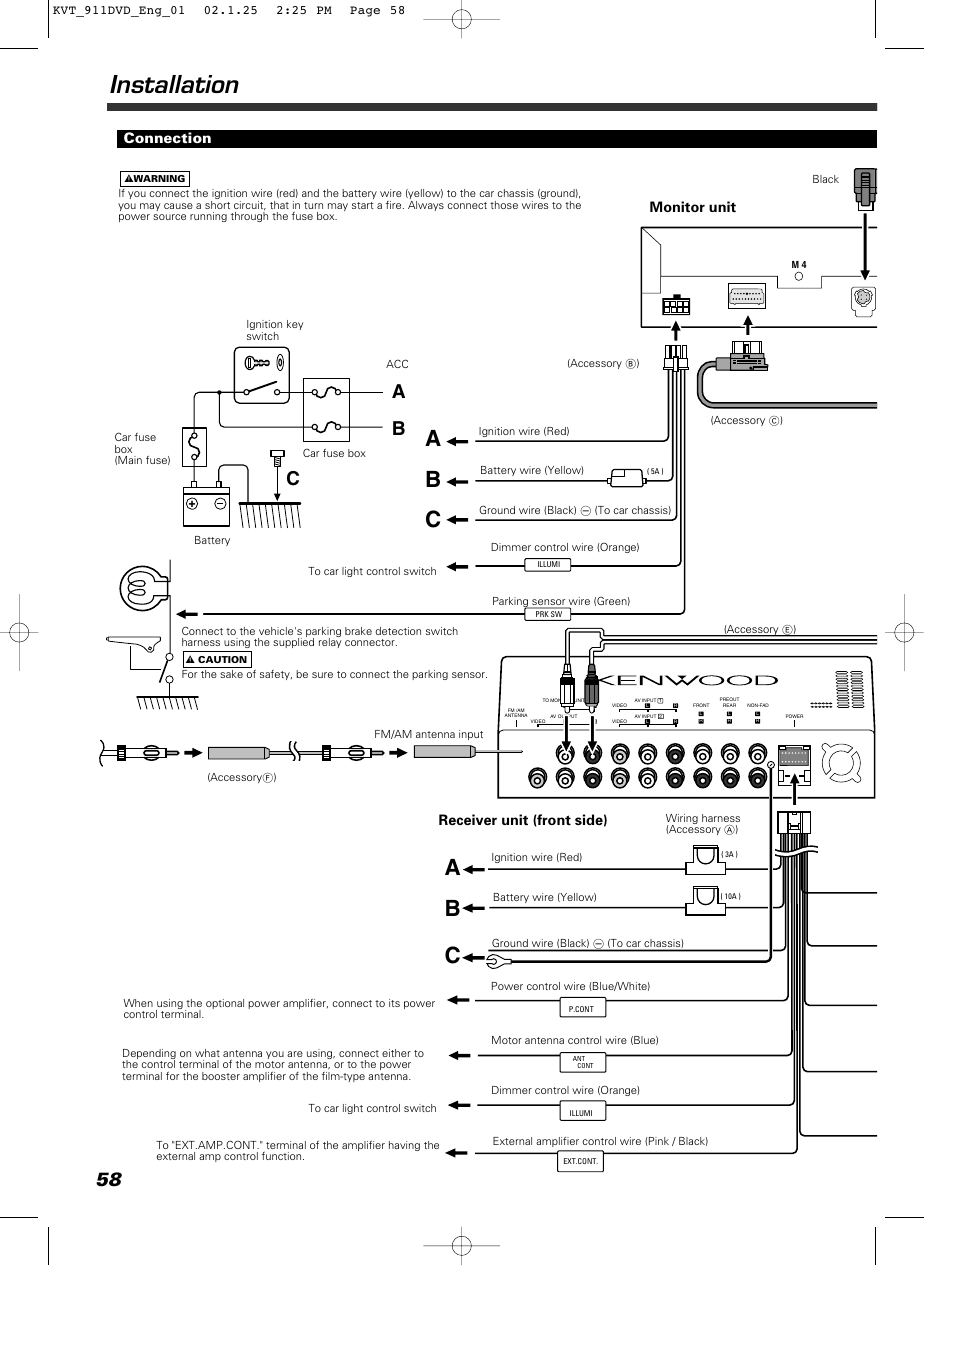 Kenwood Kvt 719dvd Wiring Diagram Wire Harness Clamp Aerospace Fisher Wire Citroen Wirings3 Jeanjaures37 Fr